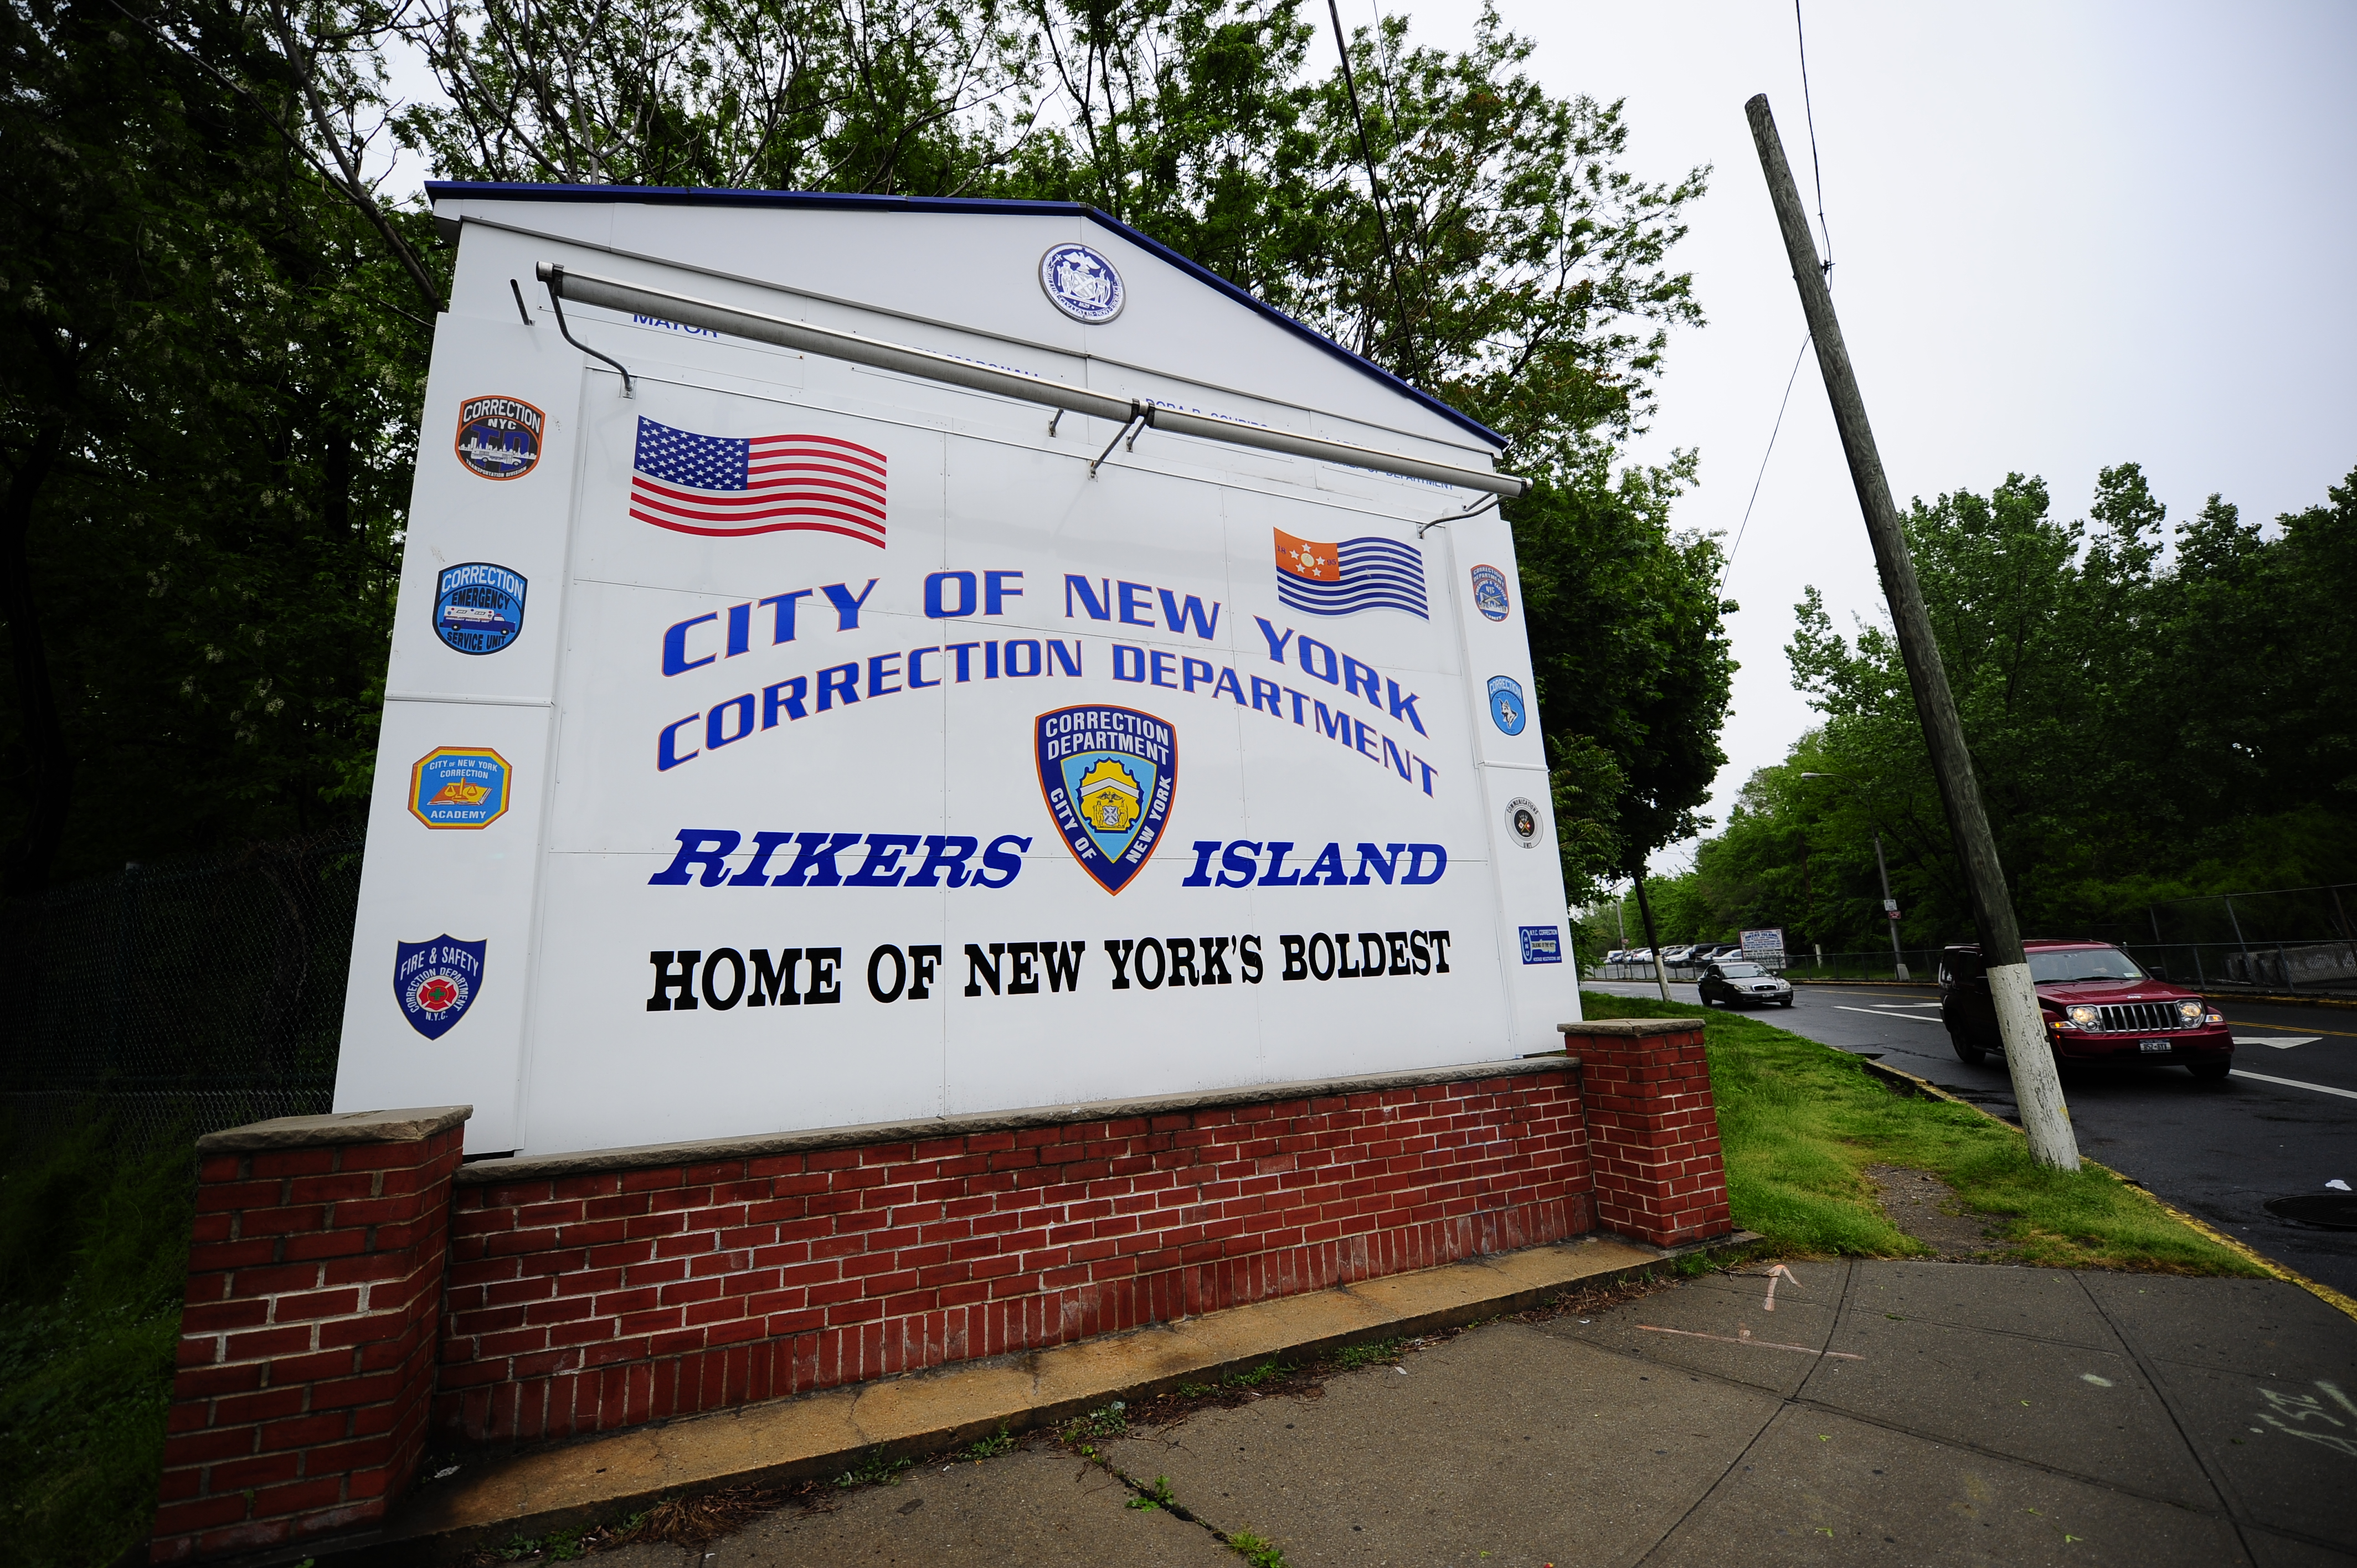 Inmates under 21 will no longer be subject to punitive segregation at Rikers Island. (Getty)